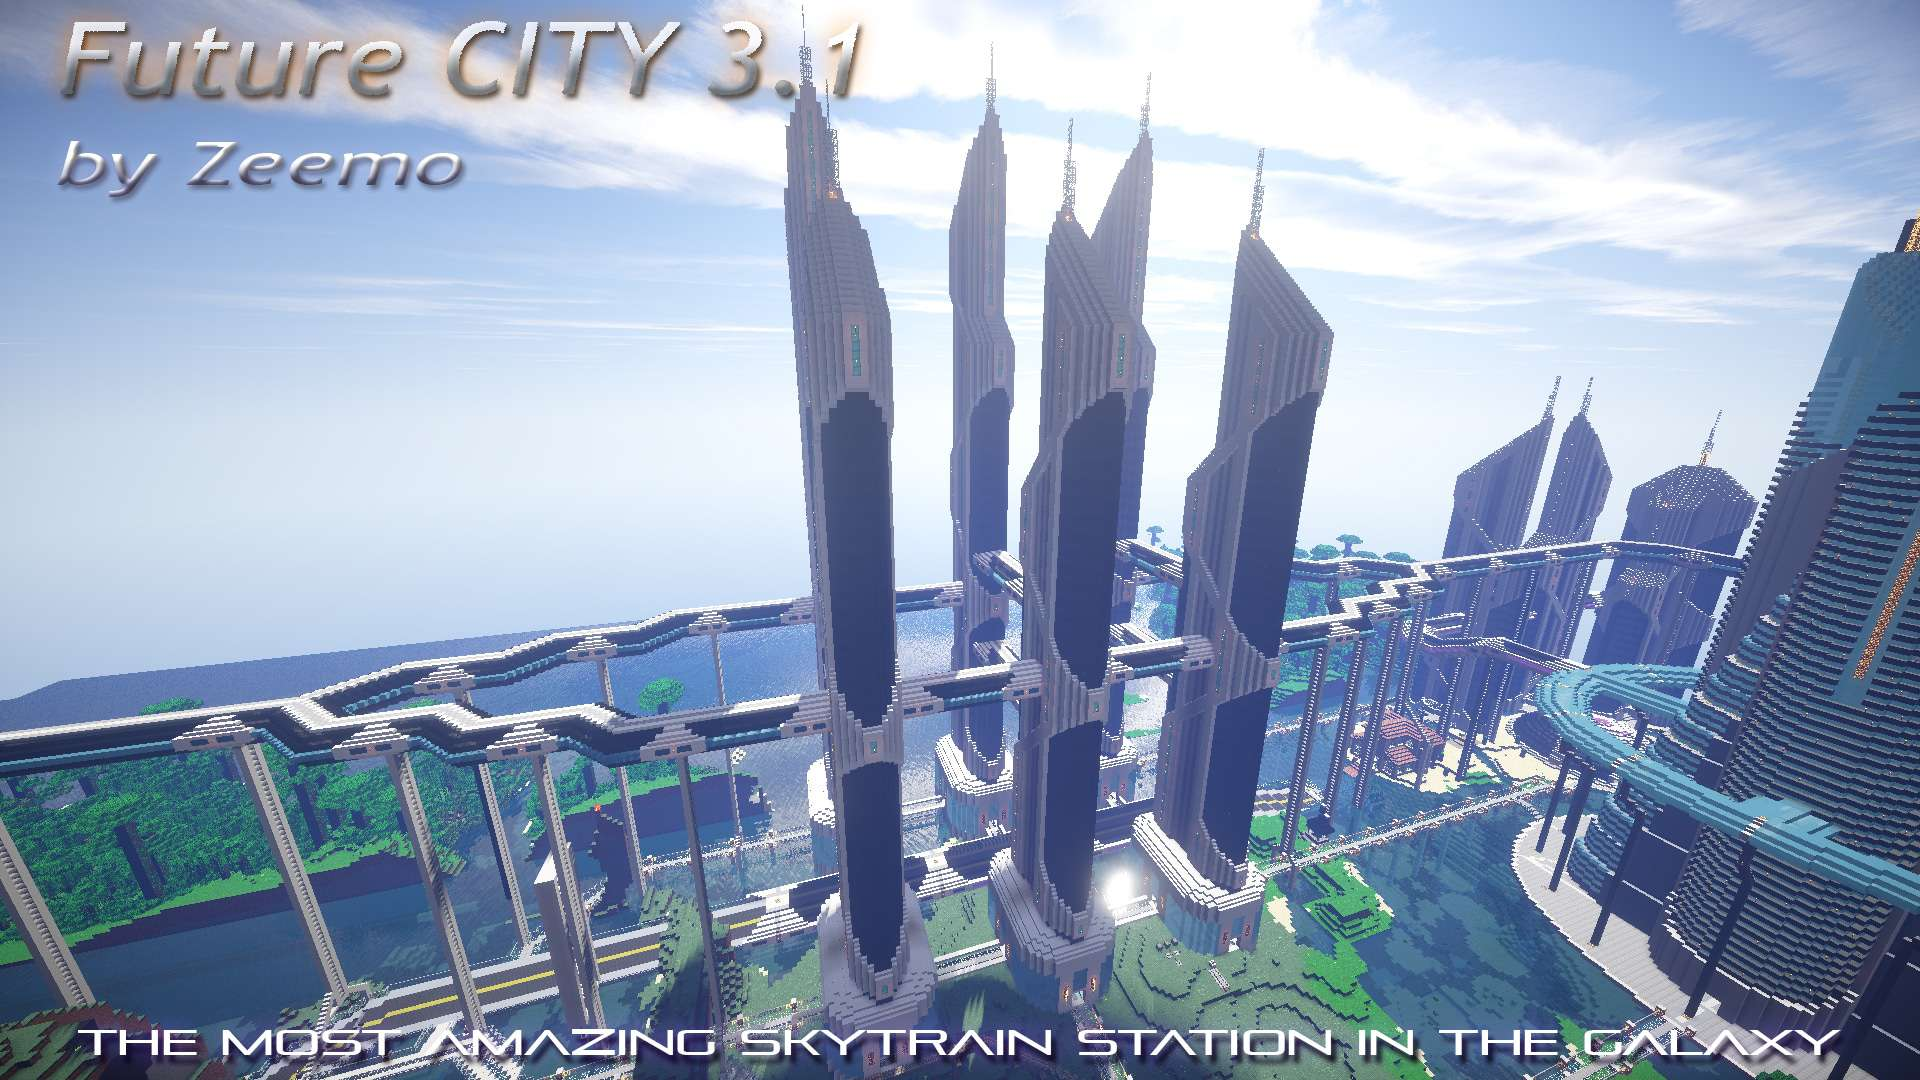 minecraft future city by zeemo 31 skyscrapers tall